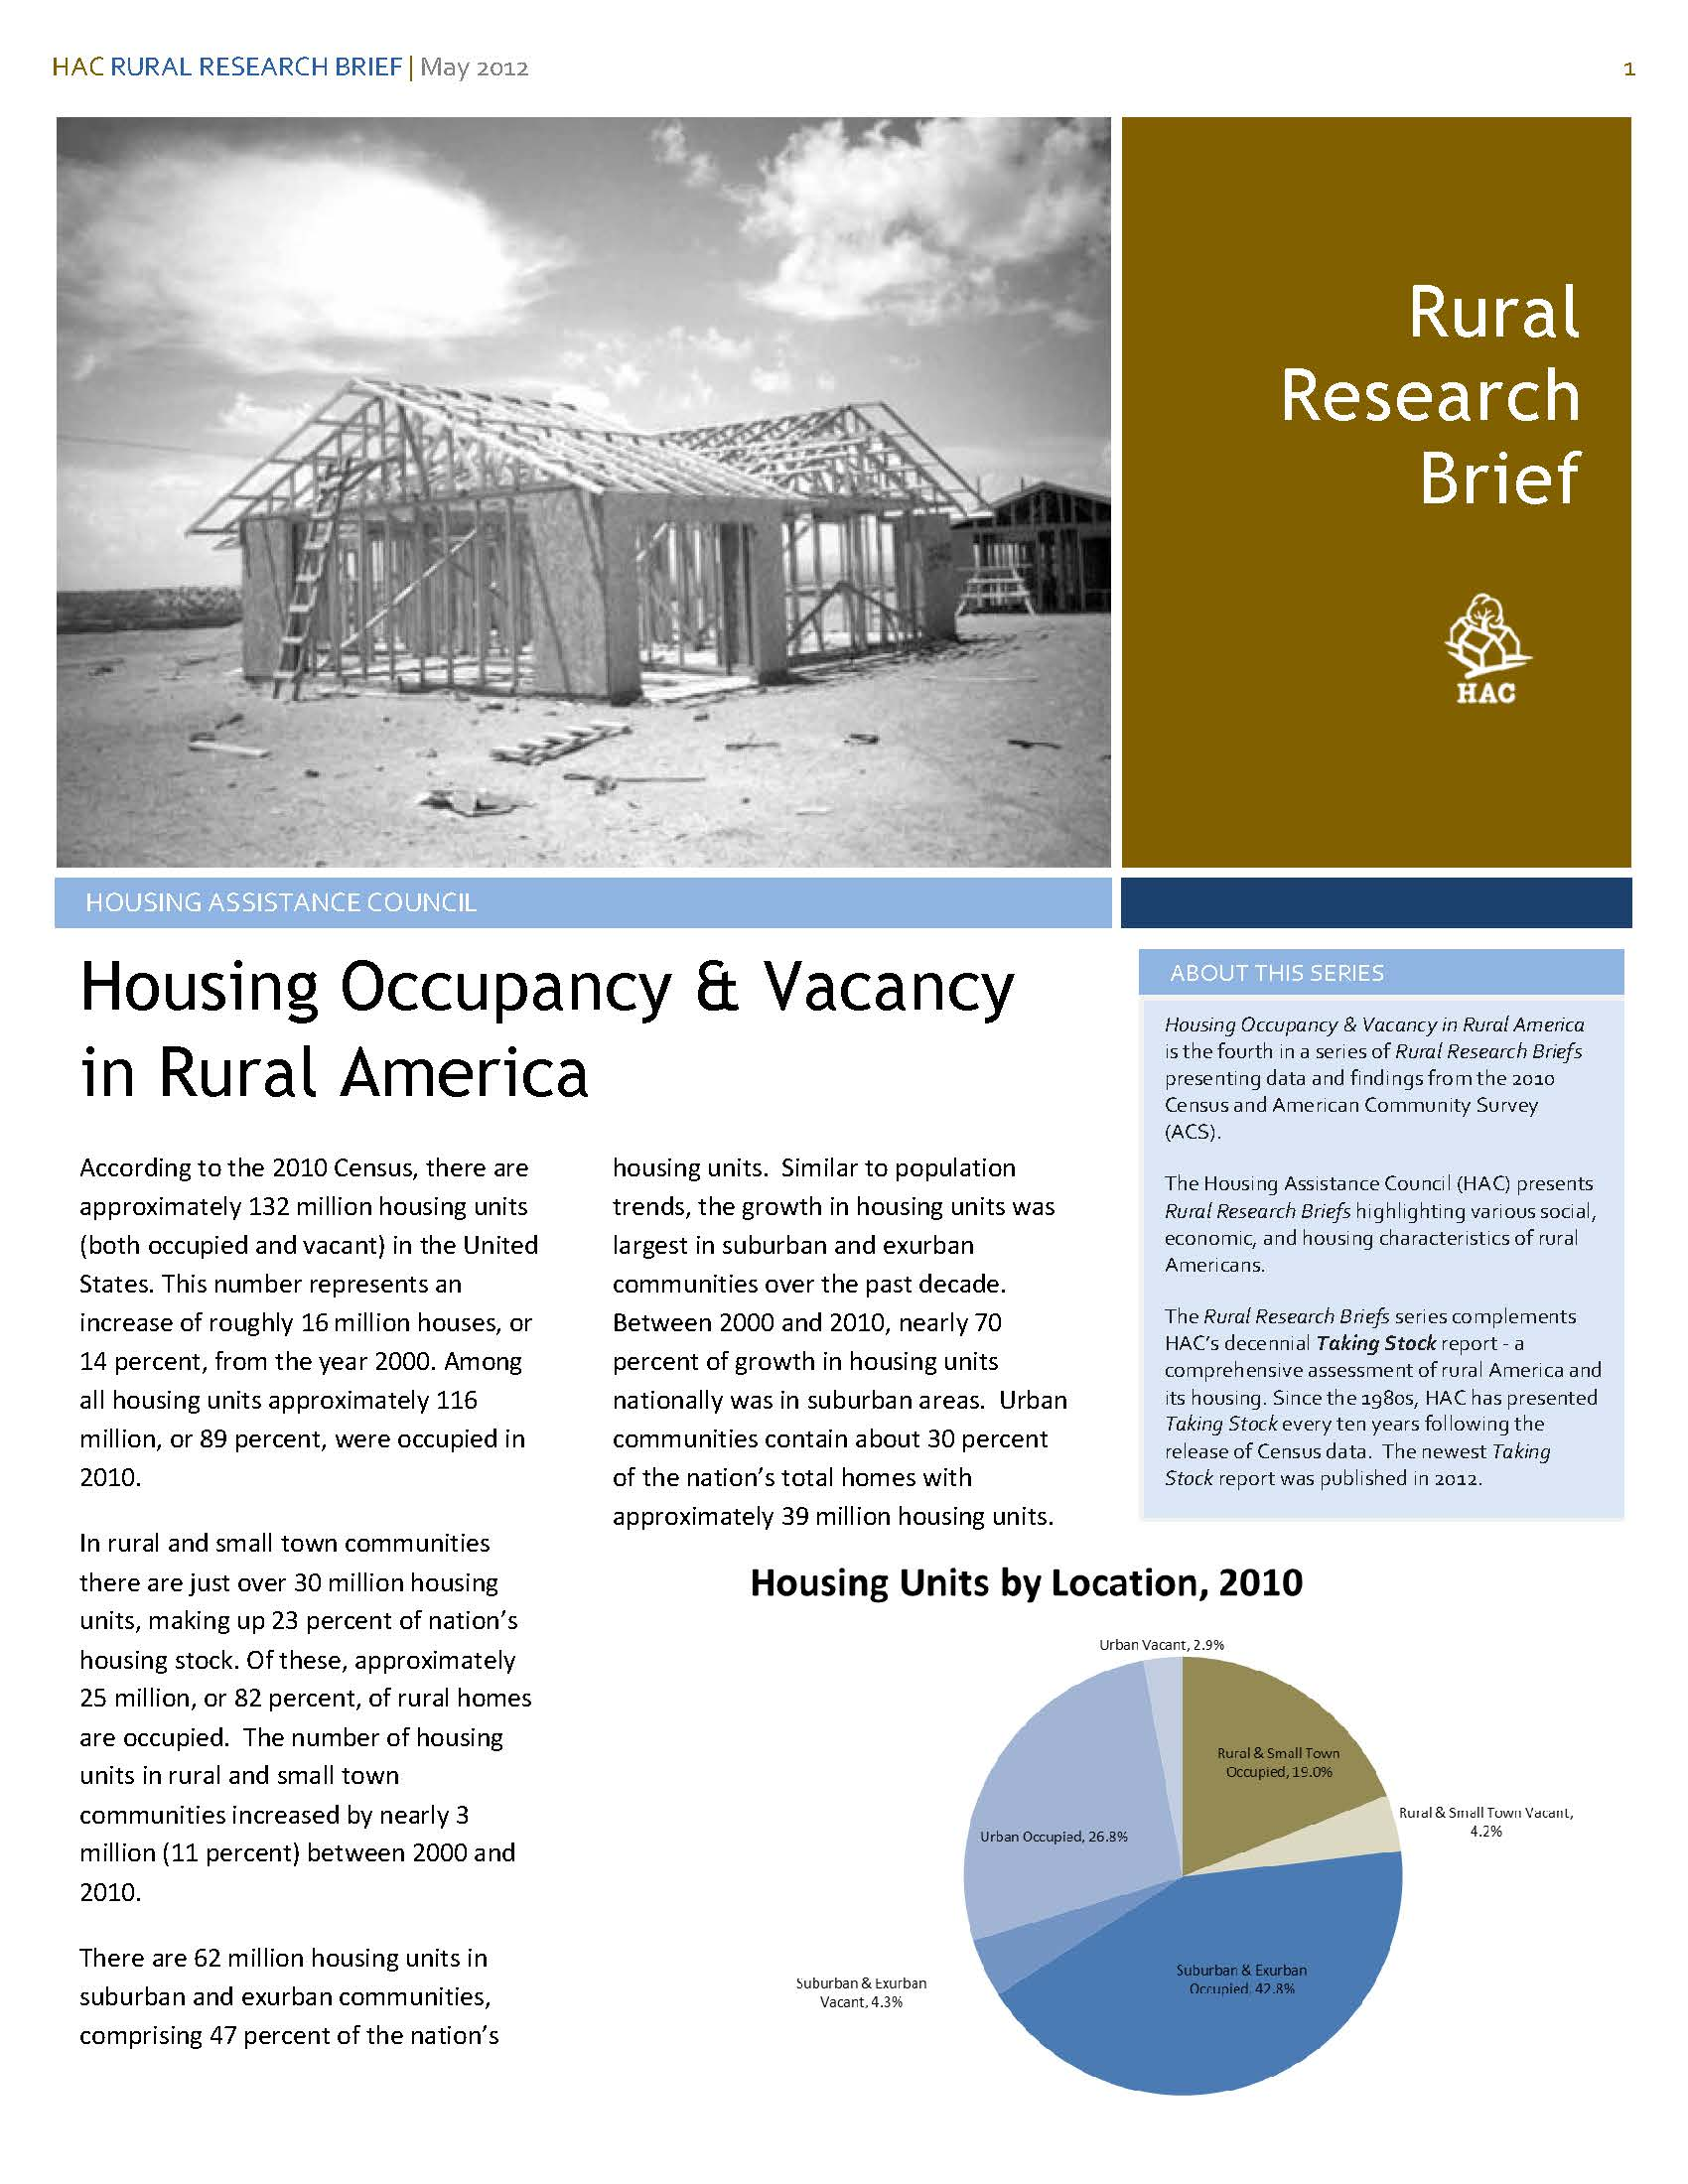 Housing Occupancy Research Brief Cover